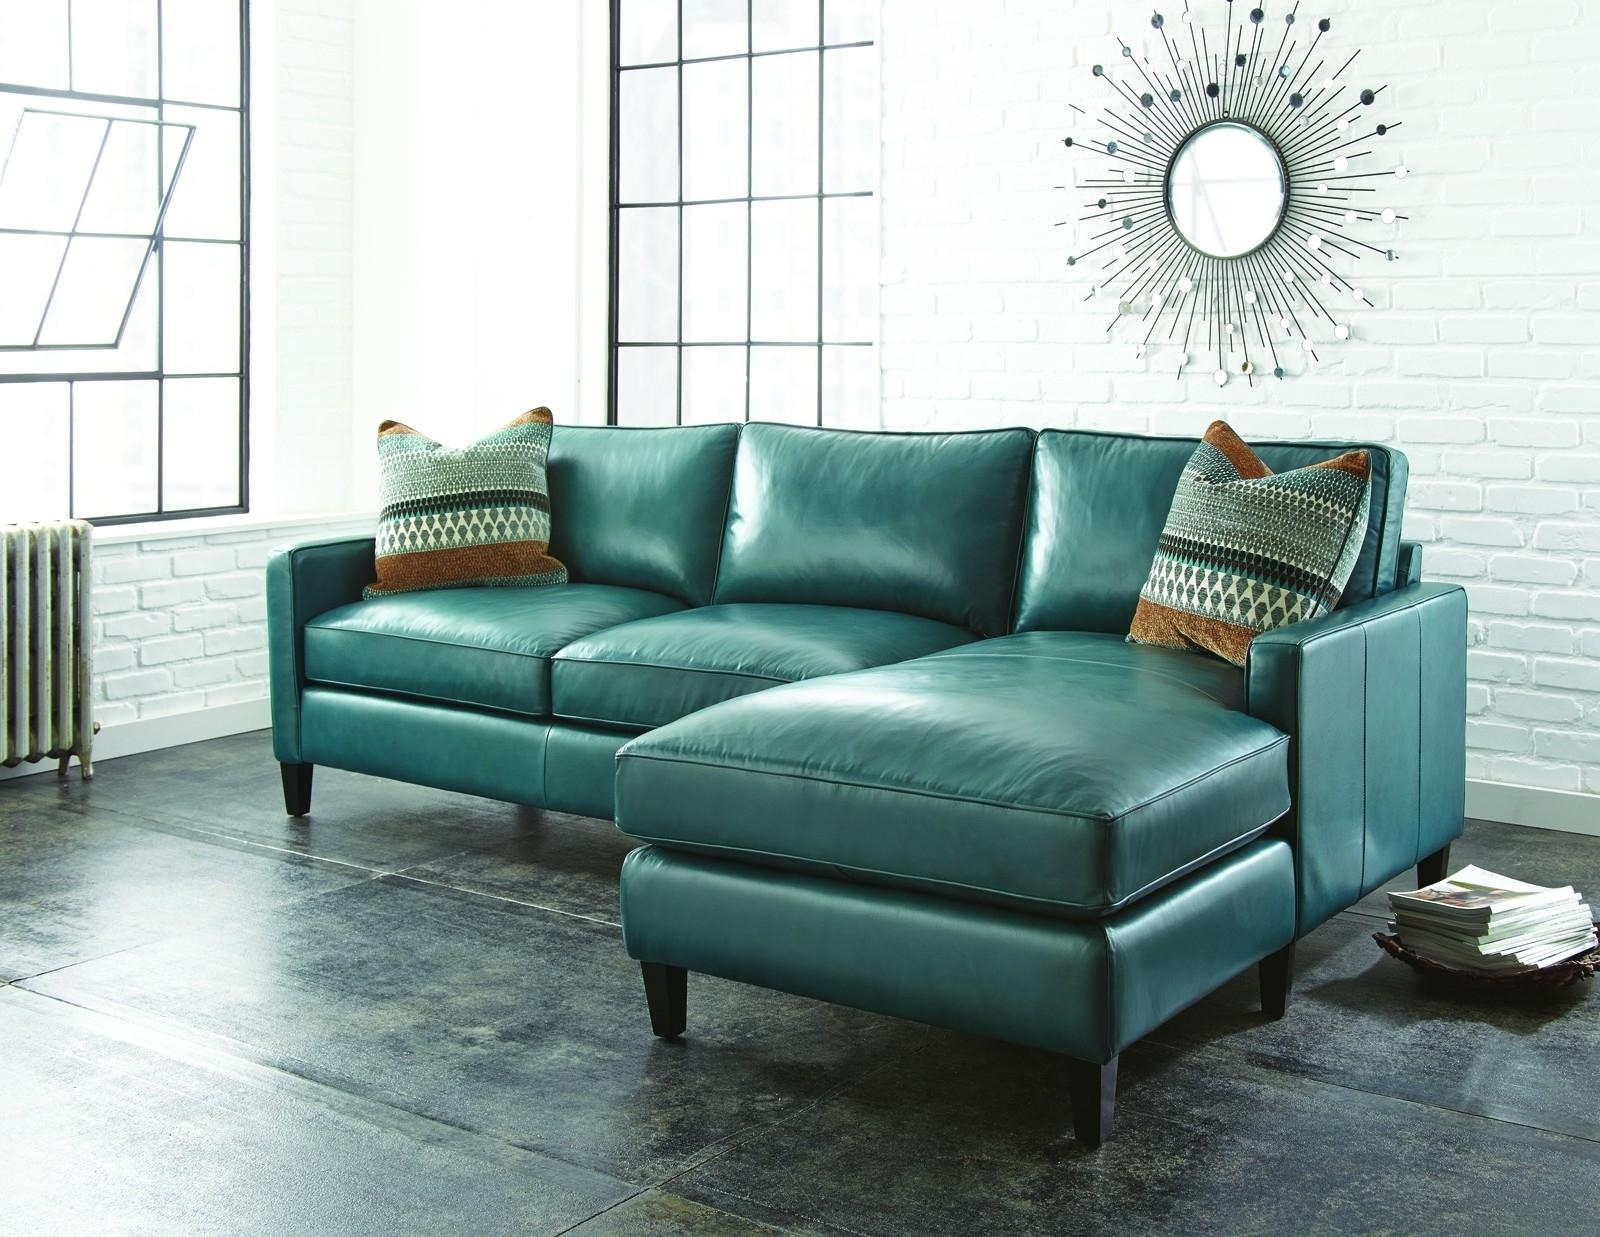 Sofas Center : Sectional Sleeper Sofa Costco Cleanupflorida Com Throughout Stacey Leather Sectional (View 10 of 20)